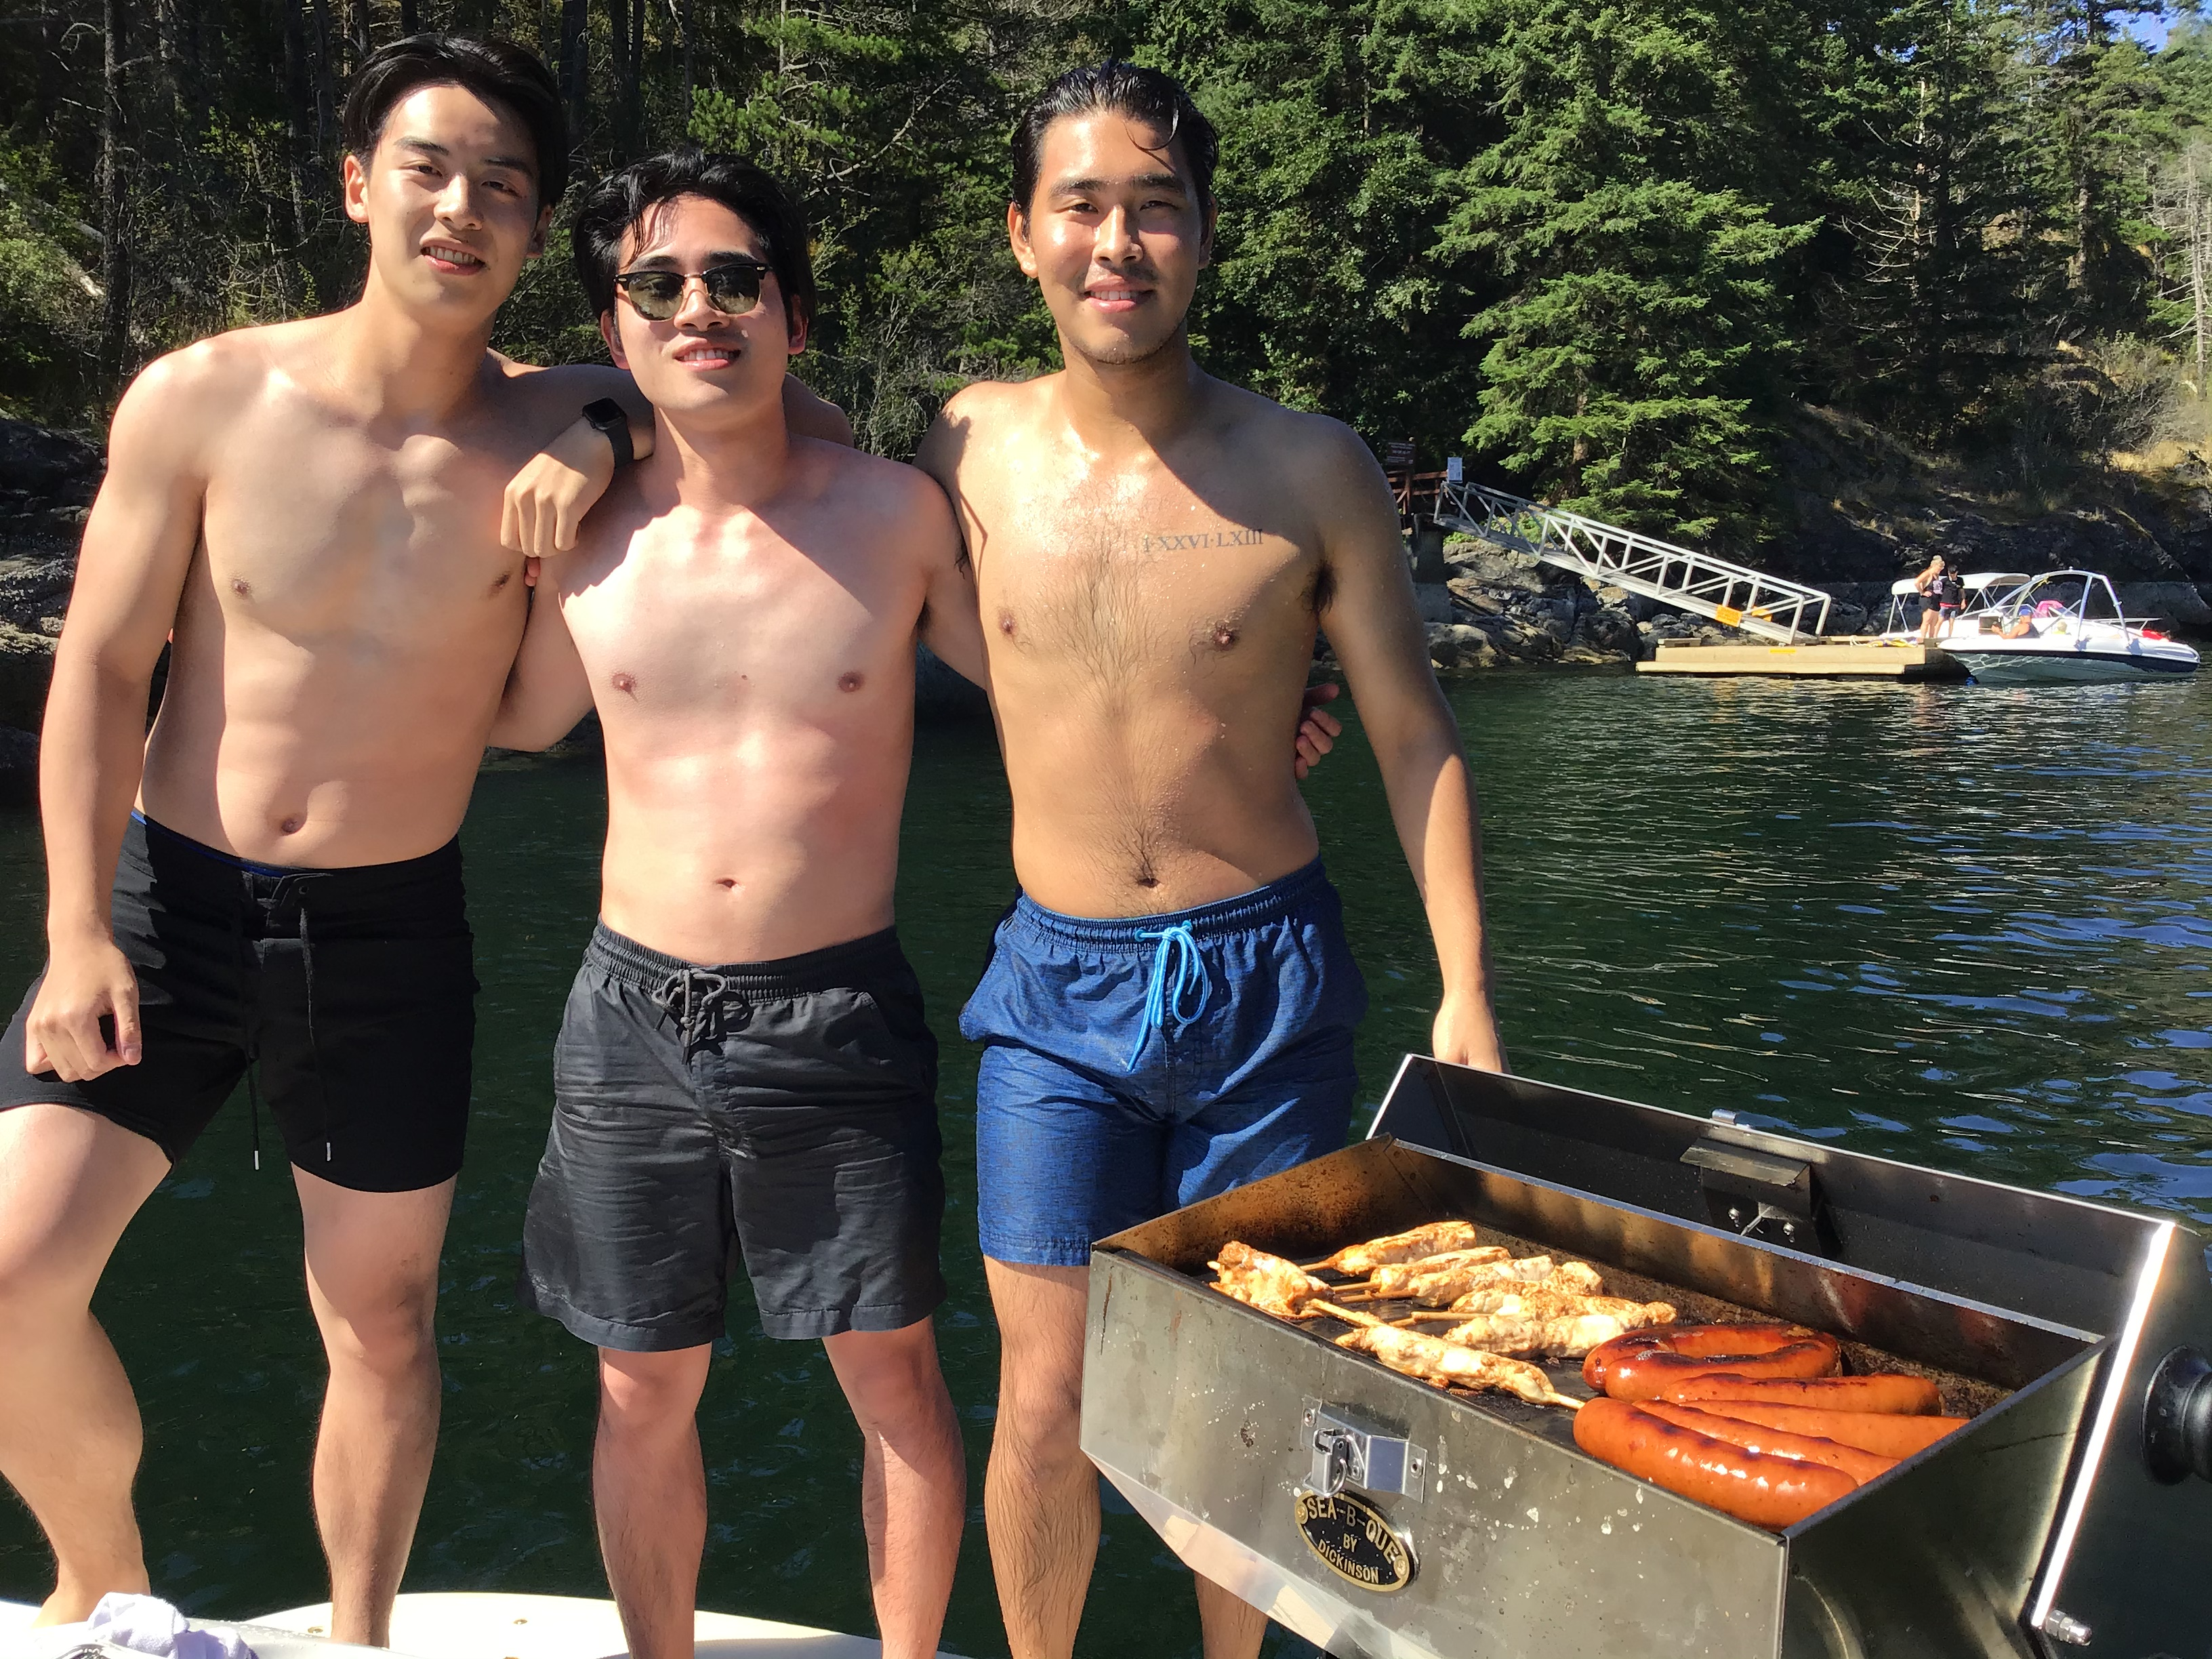 The 4 hour minimum private boat charter with Captain Griff includes a picturesque boat tour of Indian Arm, followed by a bbq while at anchor. Take a swim off the boat while you wait and then enjoy your bbq lunch/dinner surrounded by all of the beauty.